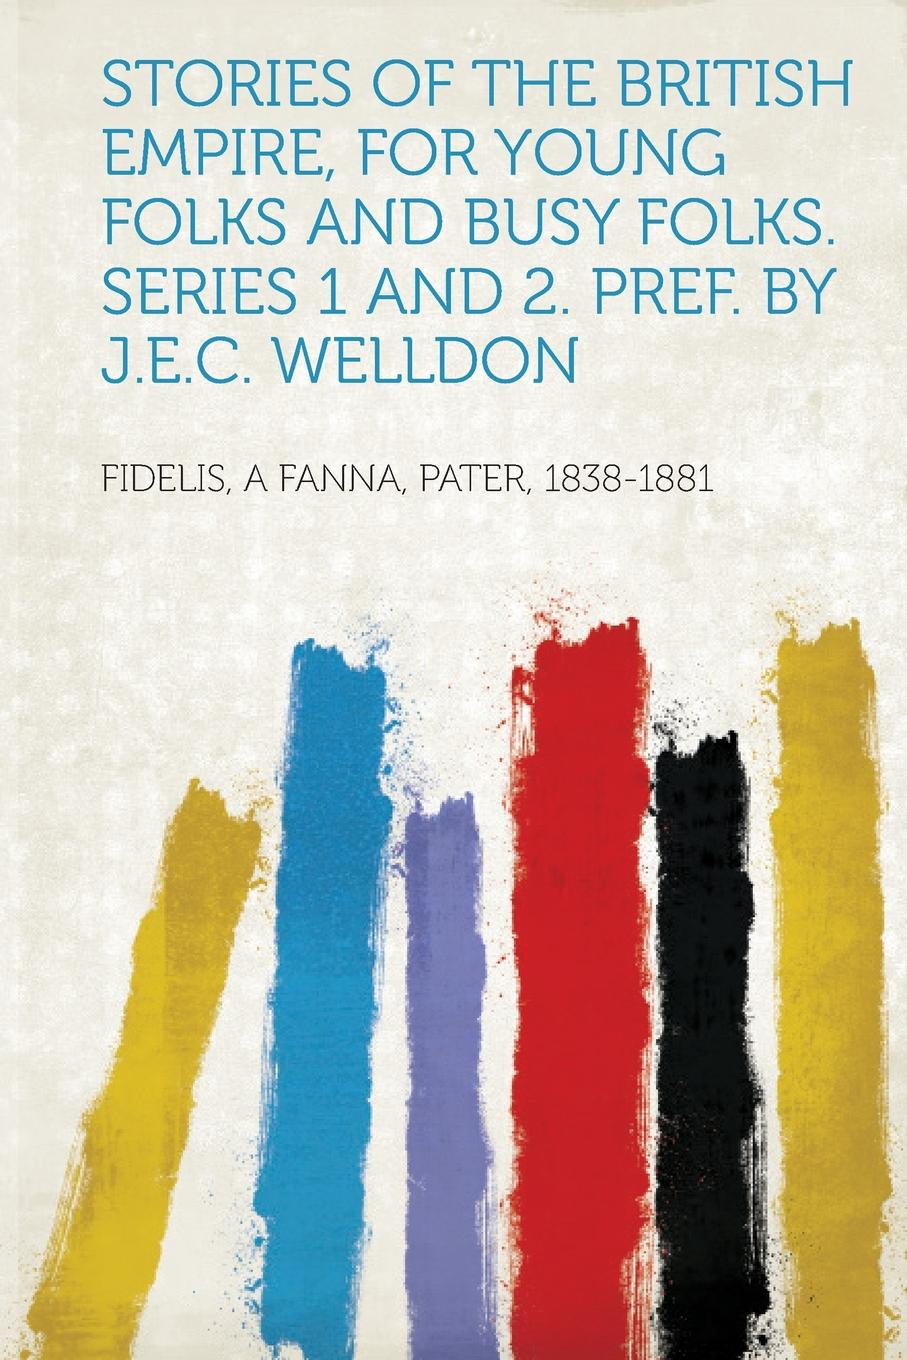 Stories of the British Empire, for Young Folks and Busy Folks. Series 1 and 2. Pref. by J.E.C. Welldon the ways of white folks